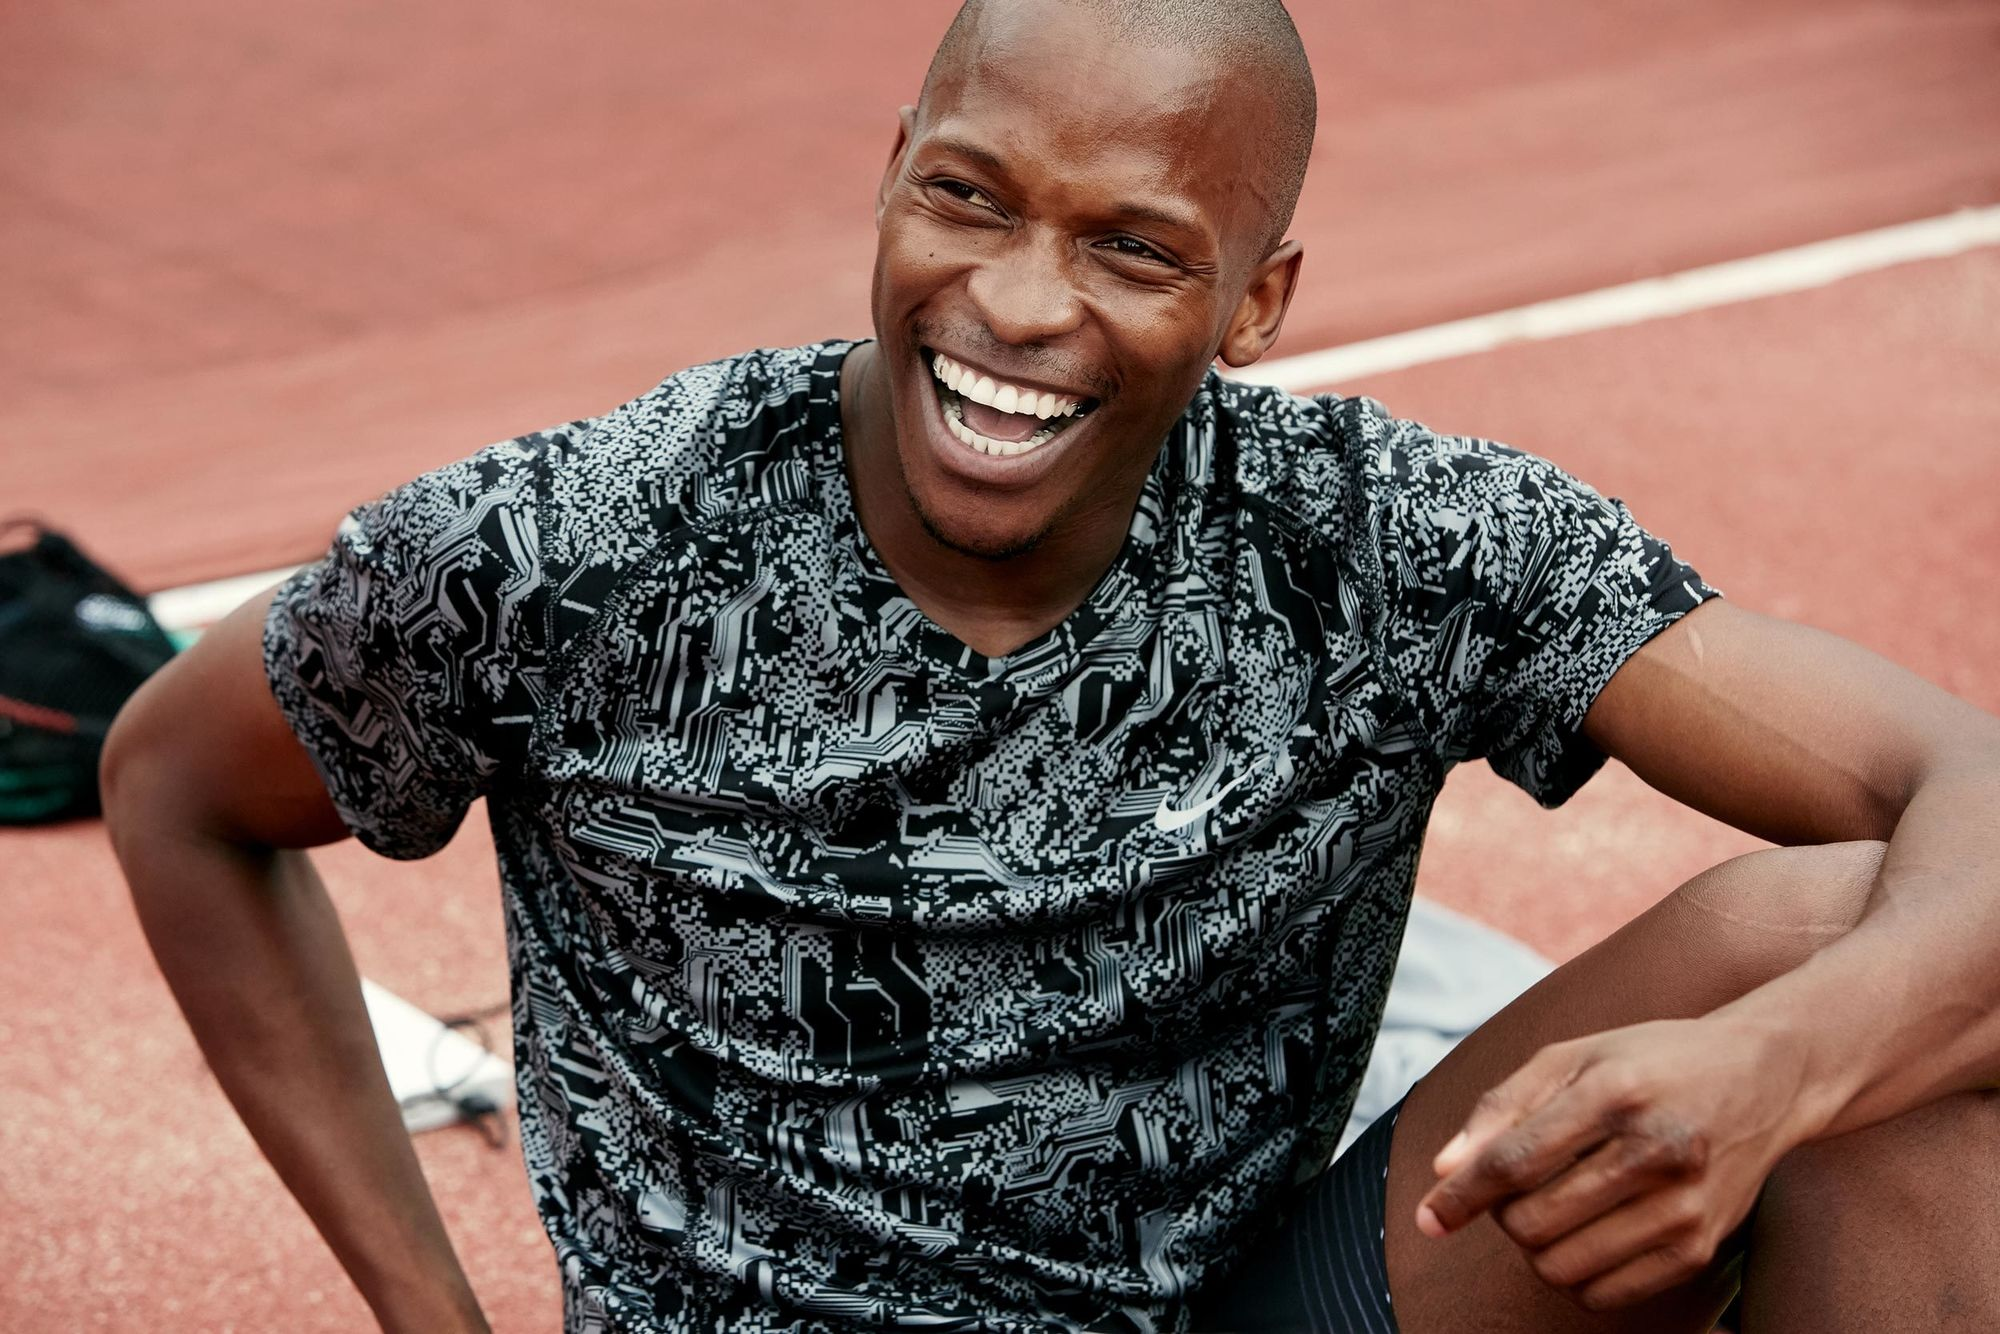 EMEIS DEUBEL: Richard Johnson shoots olympic athlete Luvo Manyonga